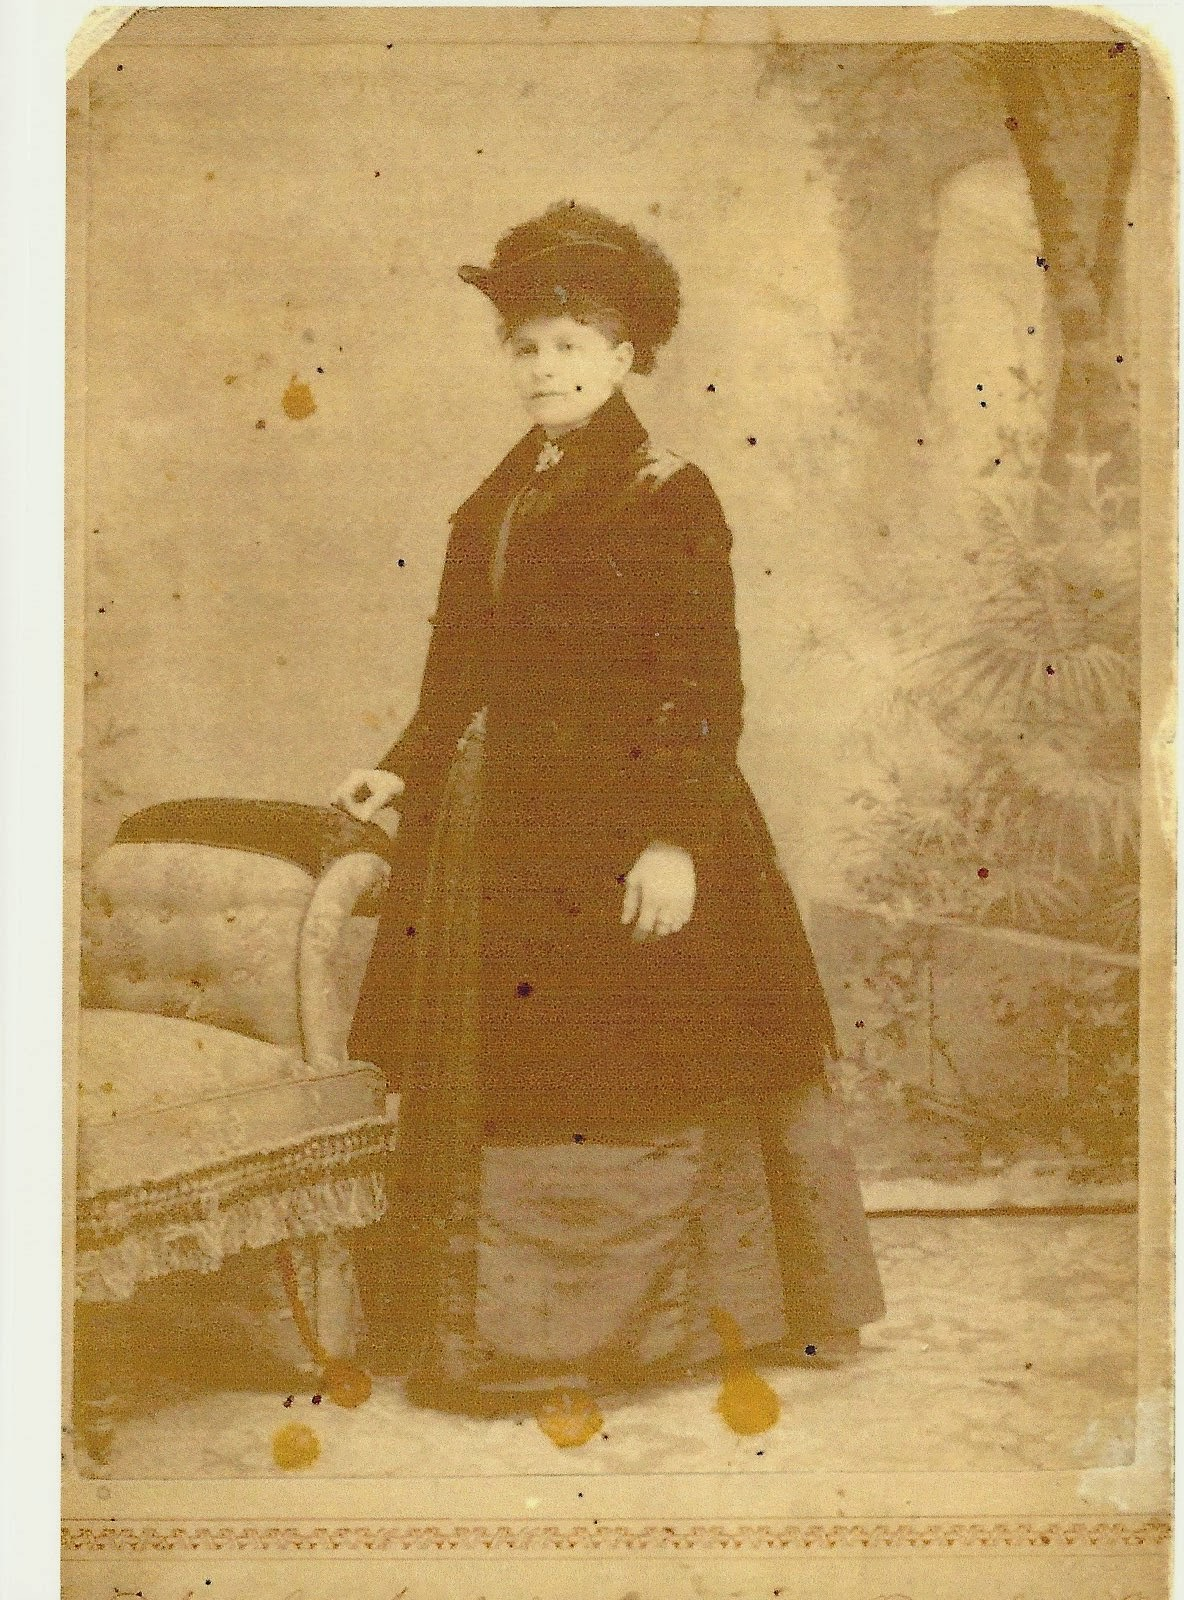 Climbing my family Tree: Mrs. Ella Fisher (1858-before 1926?)